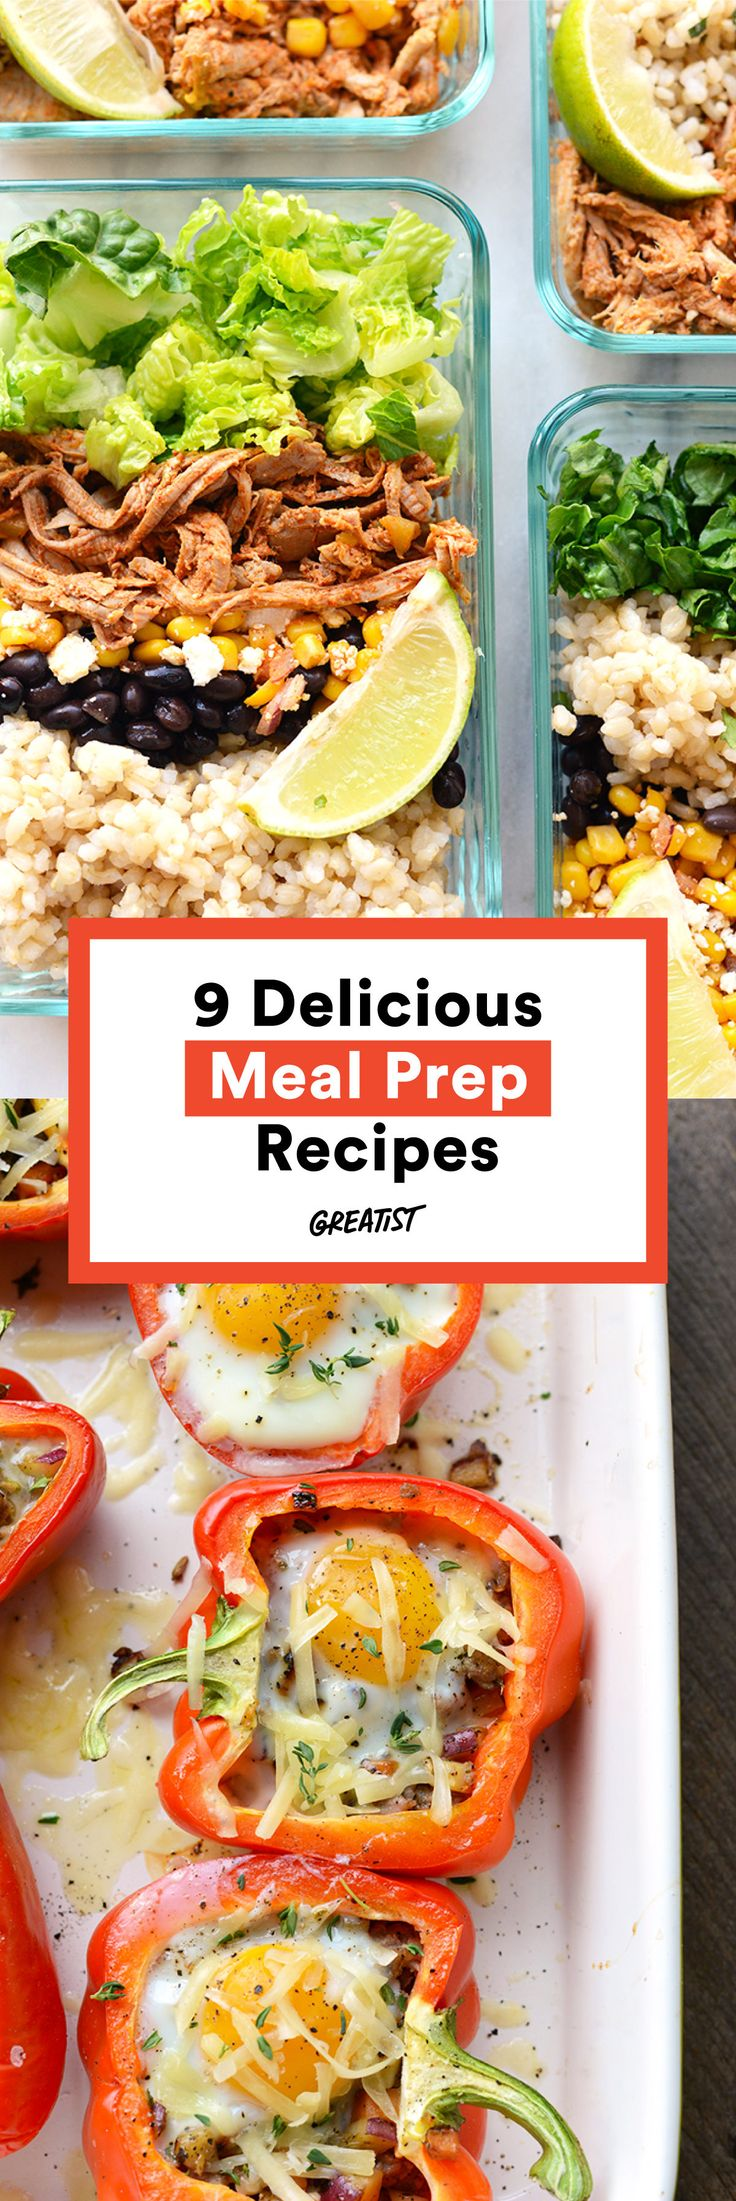 Meal prep, get set, go! #greatist http://greatist.com/eat/meal-prep-recipes-for-every-meal